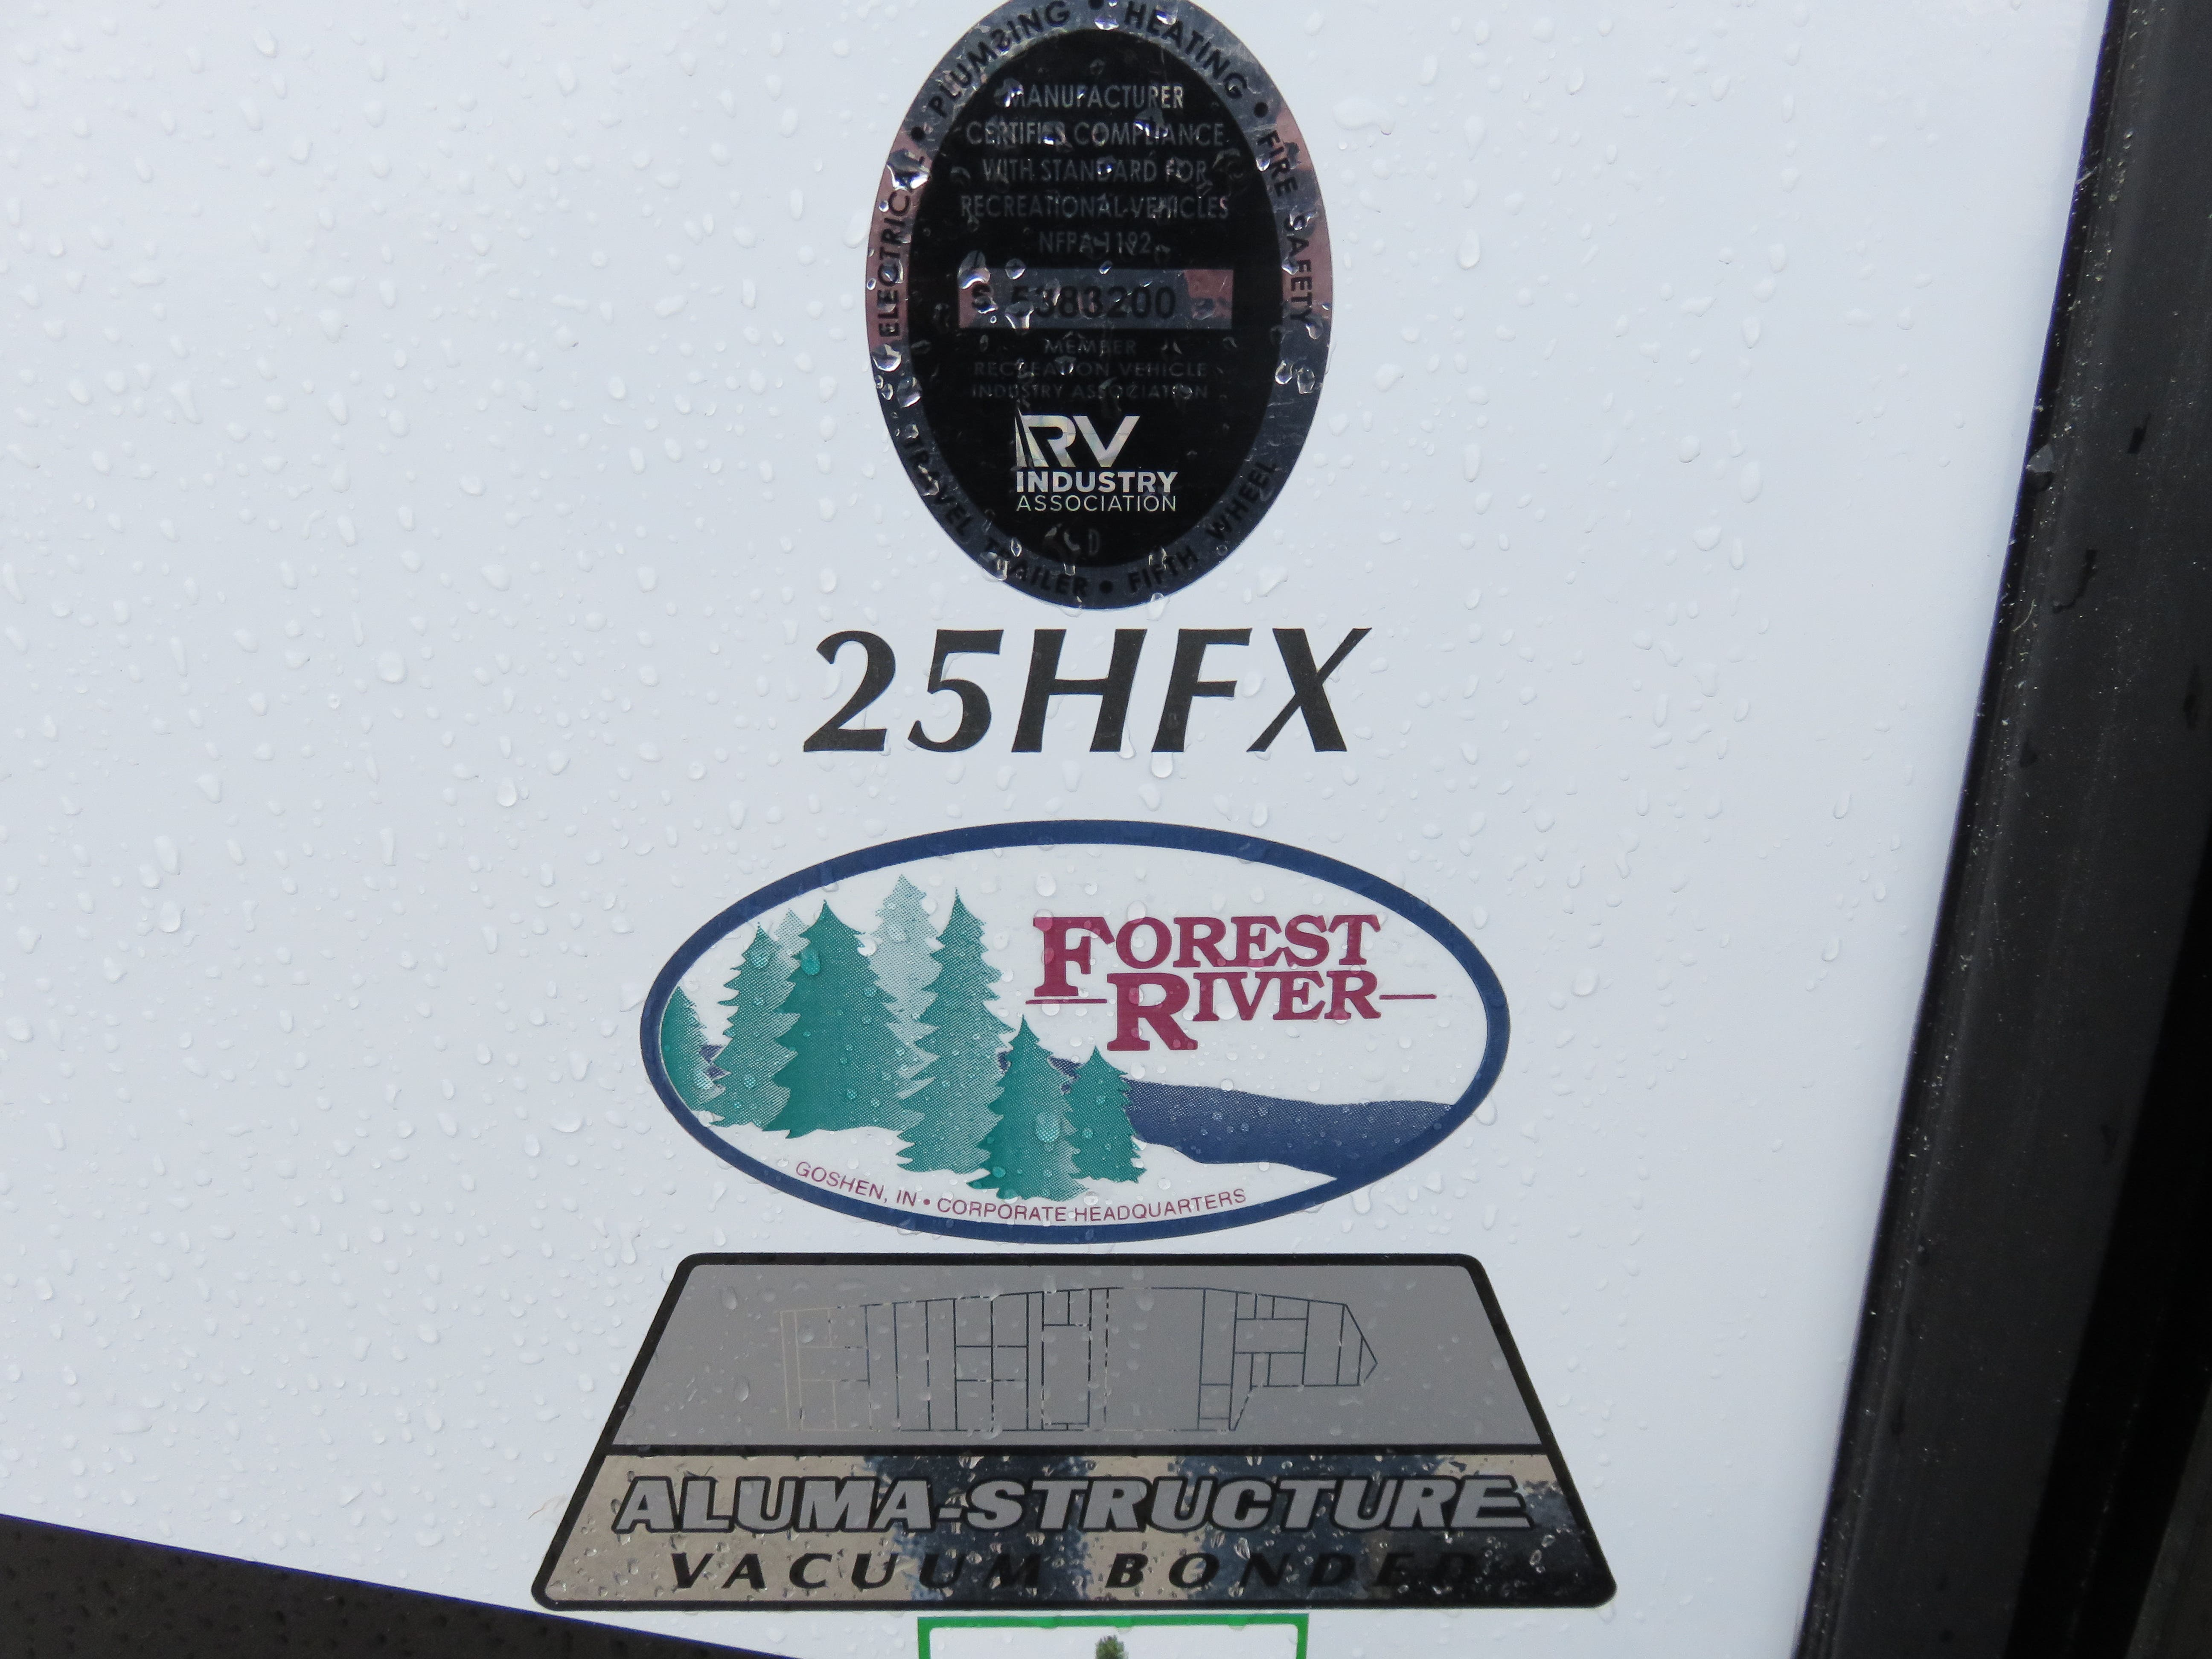 2020 Forest River Xlr 25HFX Thumbnail